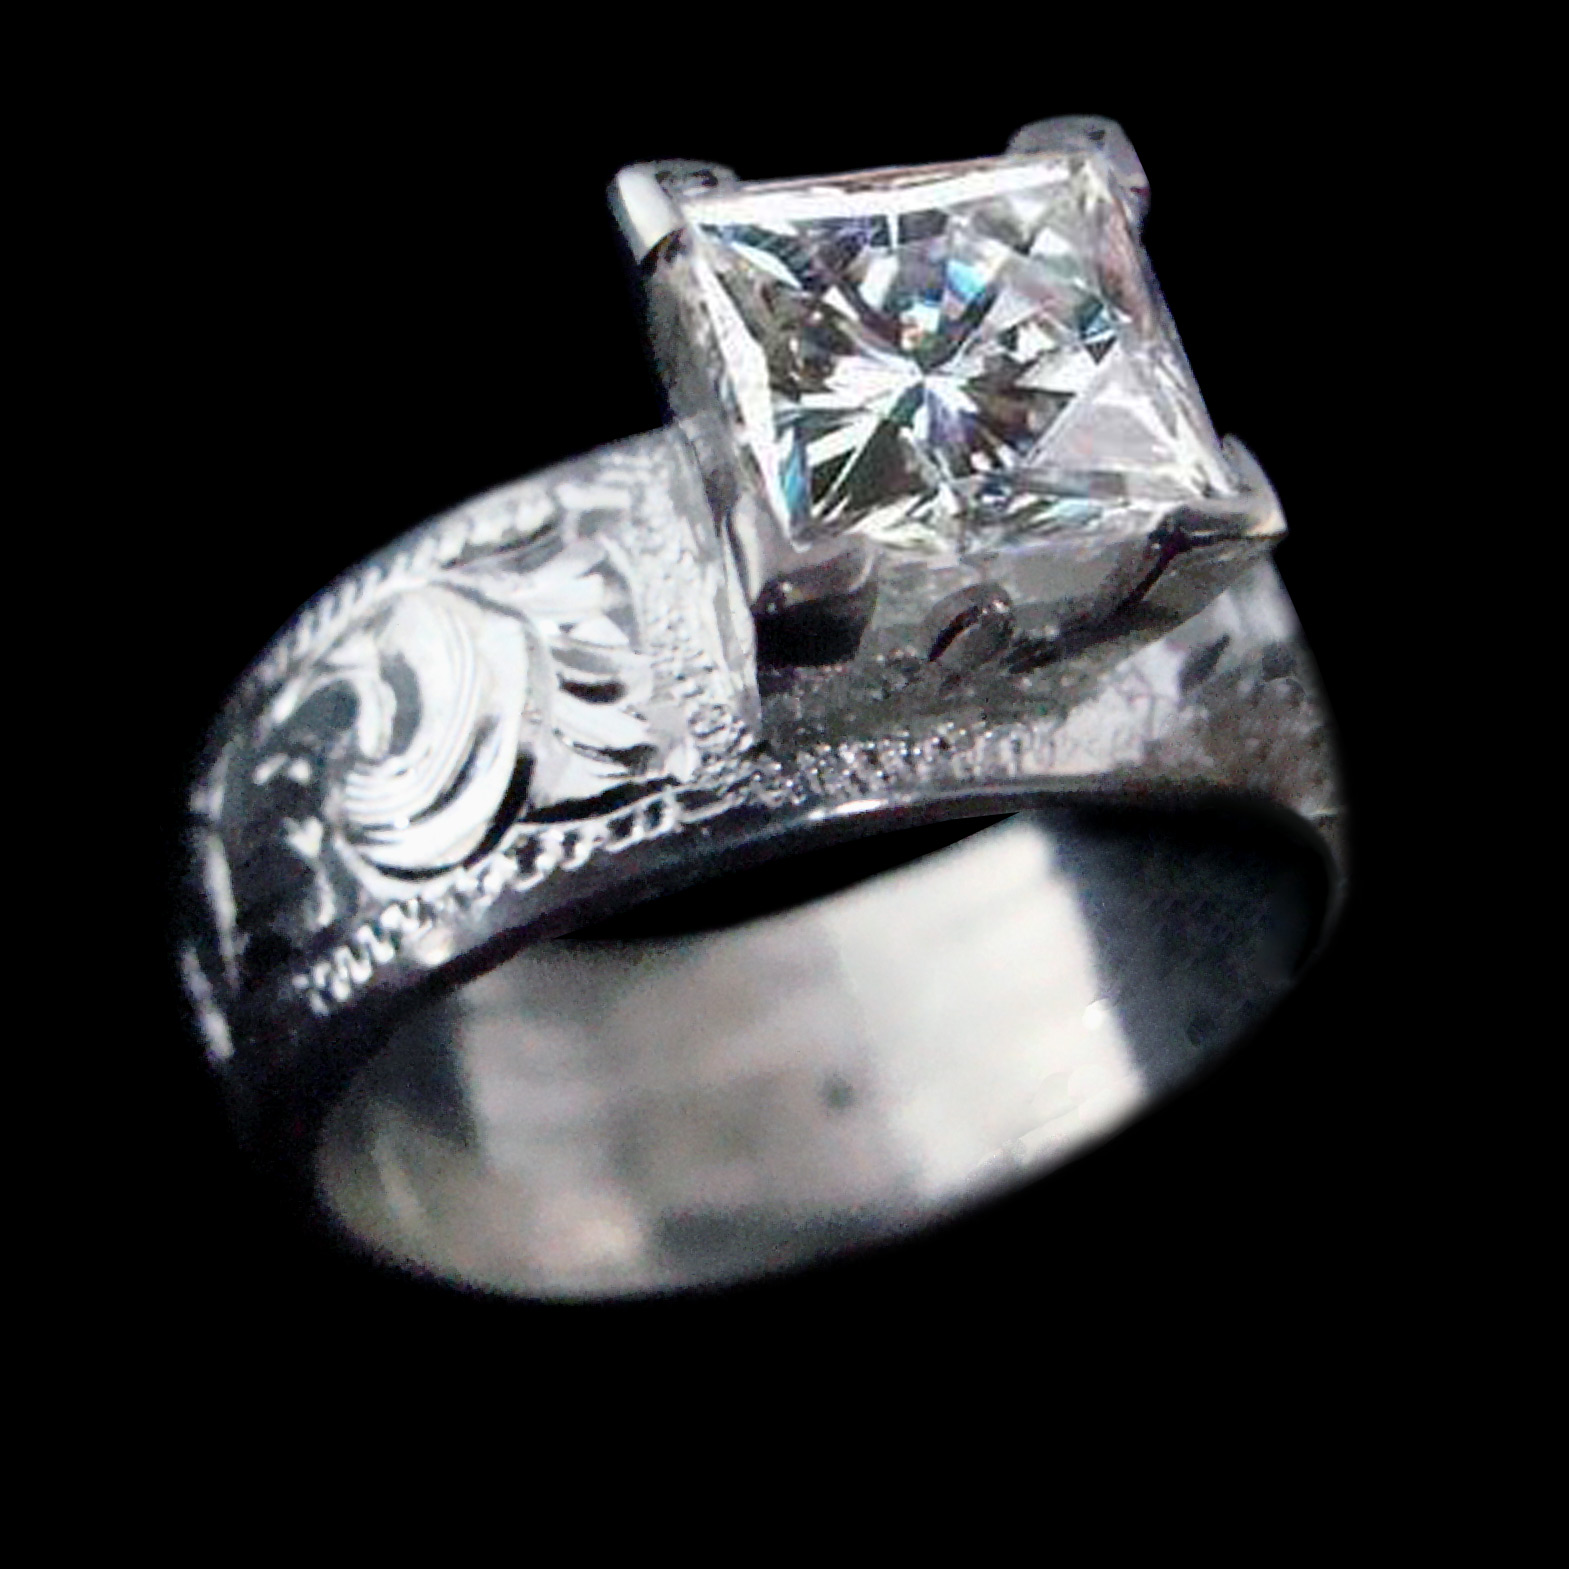 decoration wedding archives silversmith party engraved rings mens memorable made silversmiths u western montana